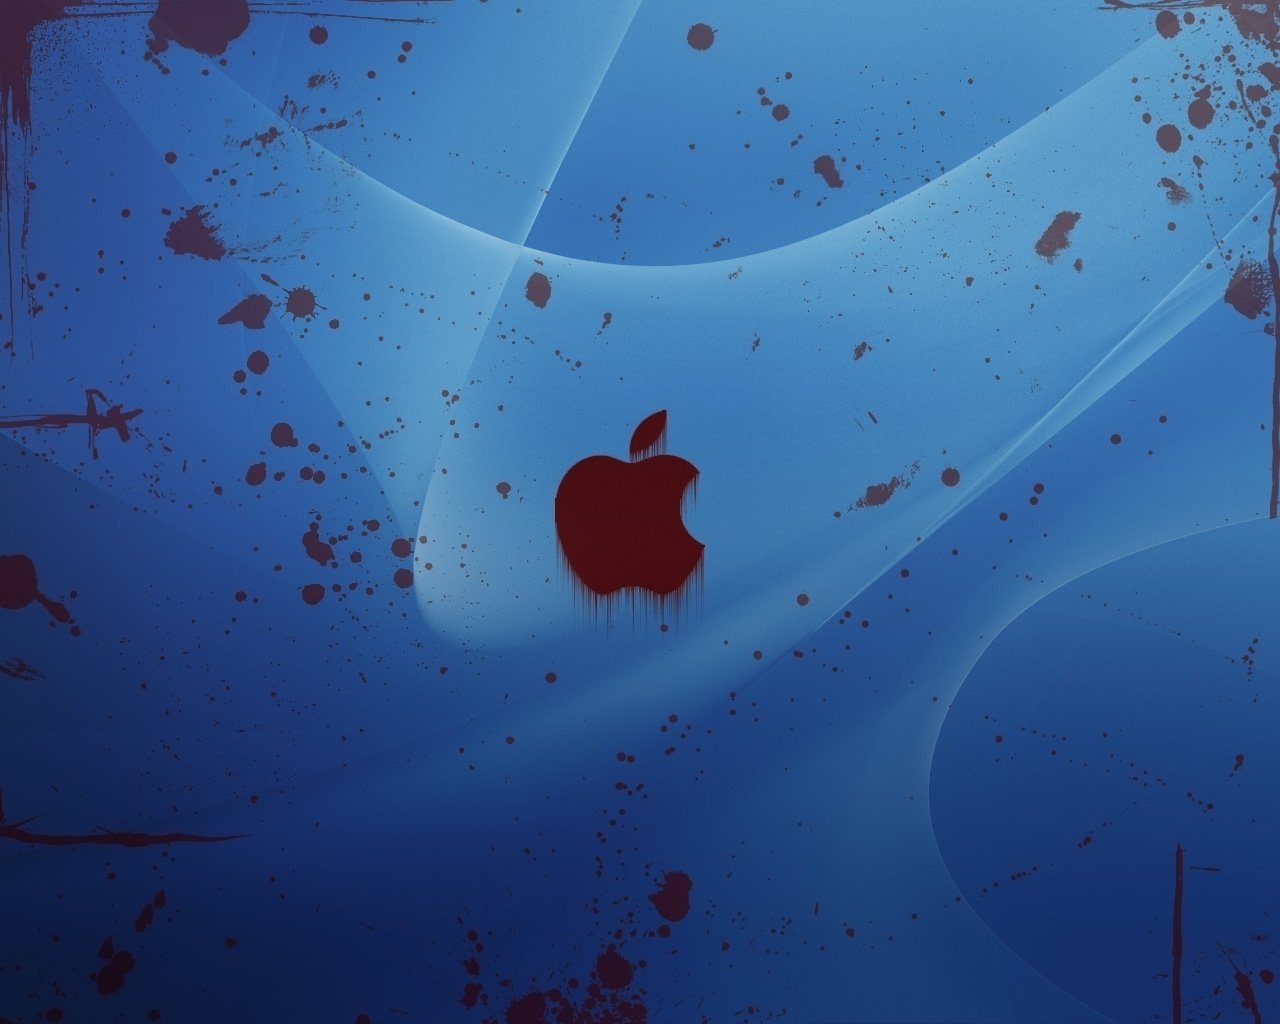 1280x1024 Blood Apple desktop wallpapers and stock photos